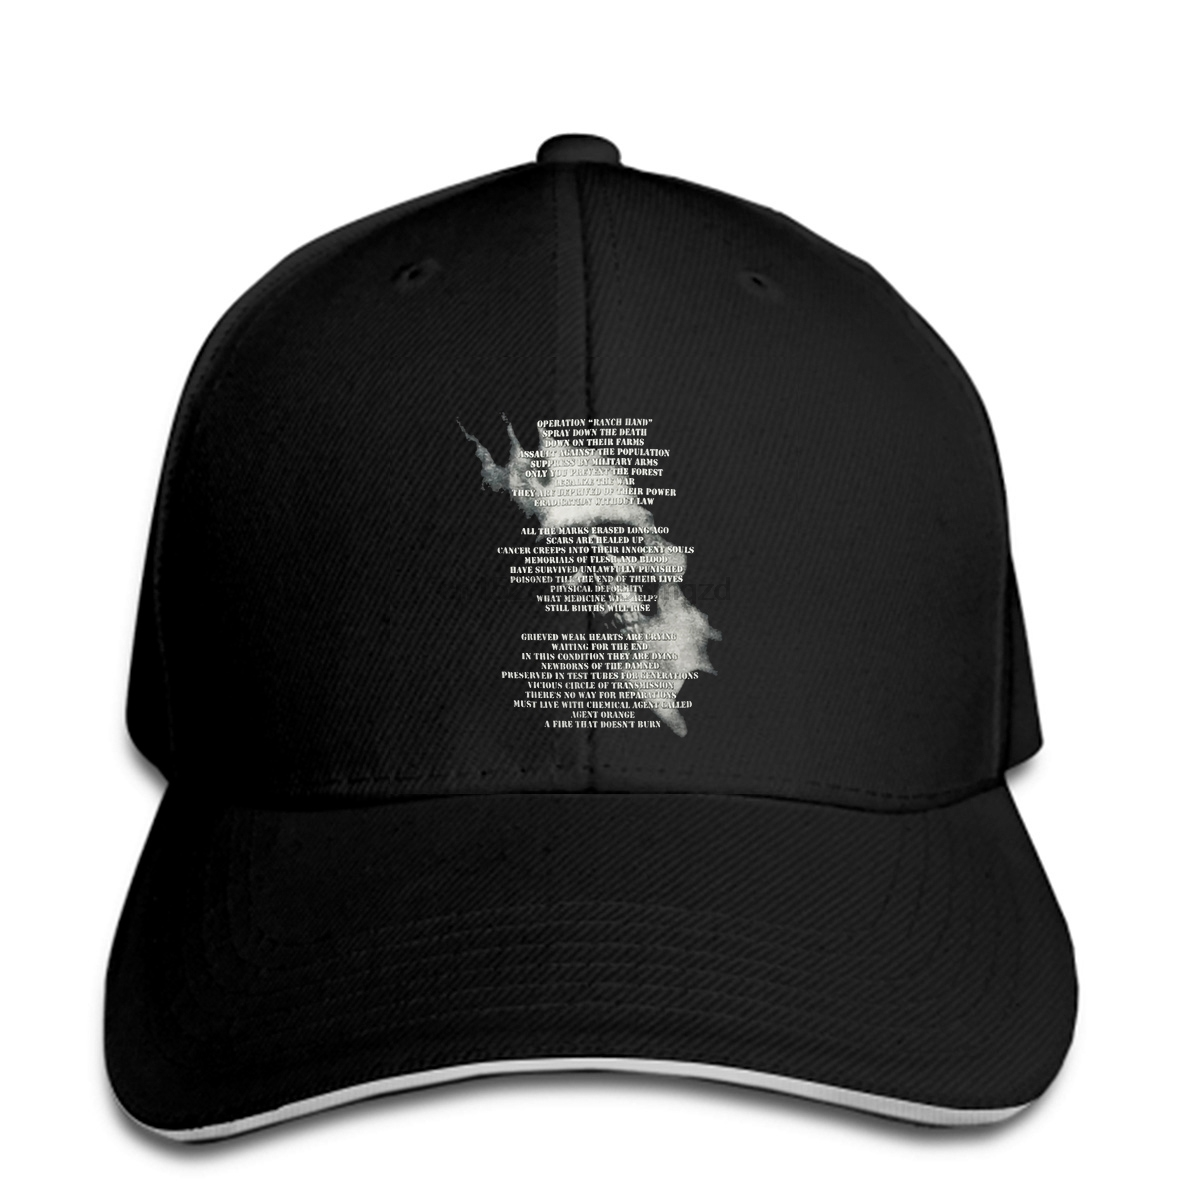 New Sodom Agent Orange Thrash Metal Album Hat badhabitmerch Snapback Cap Women Hat Peaked image